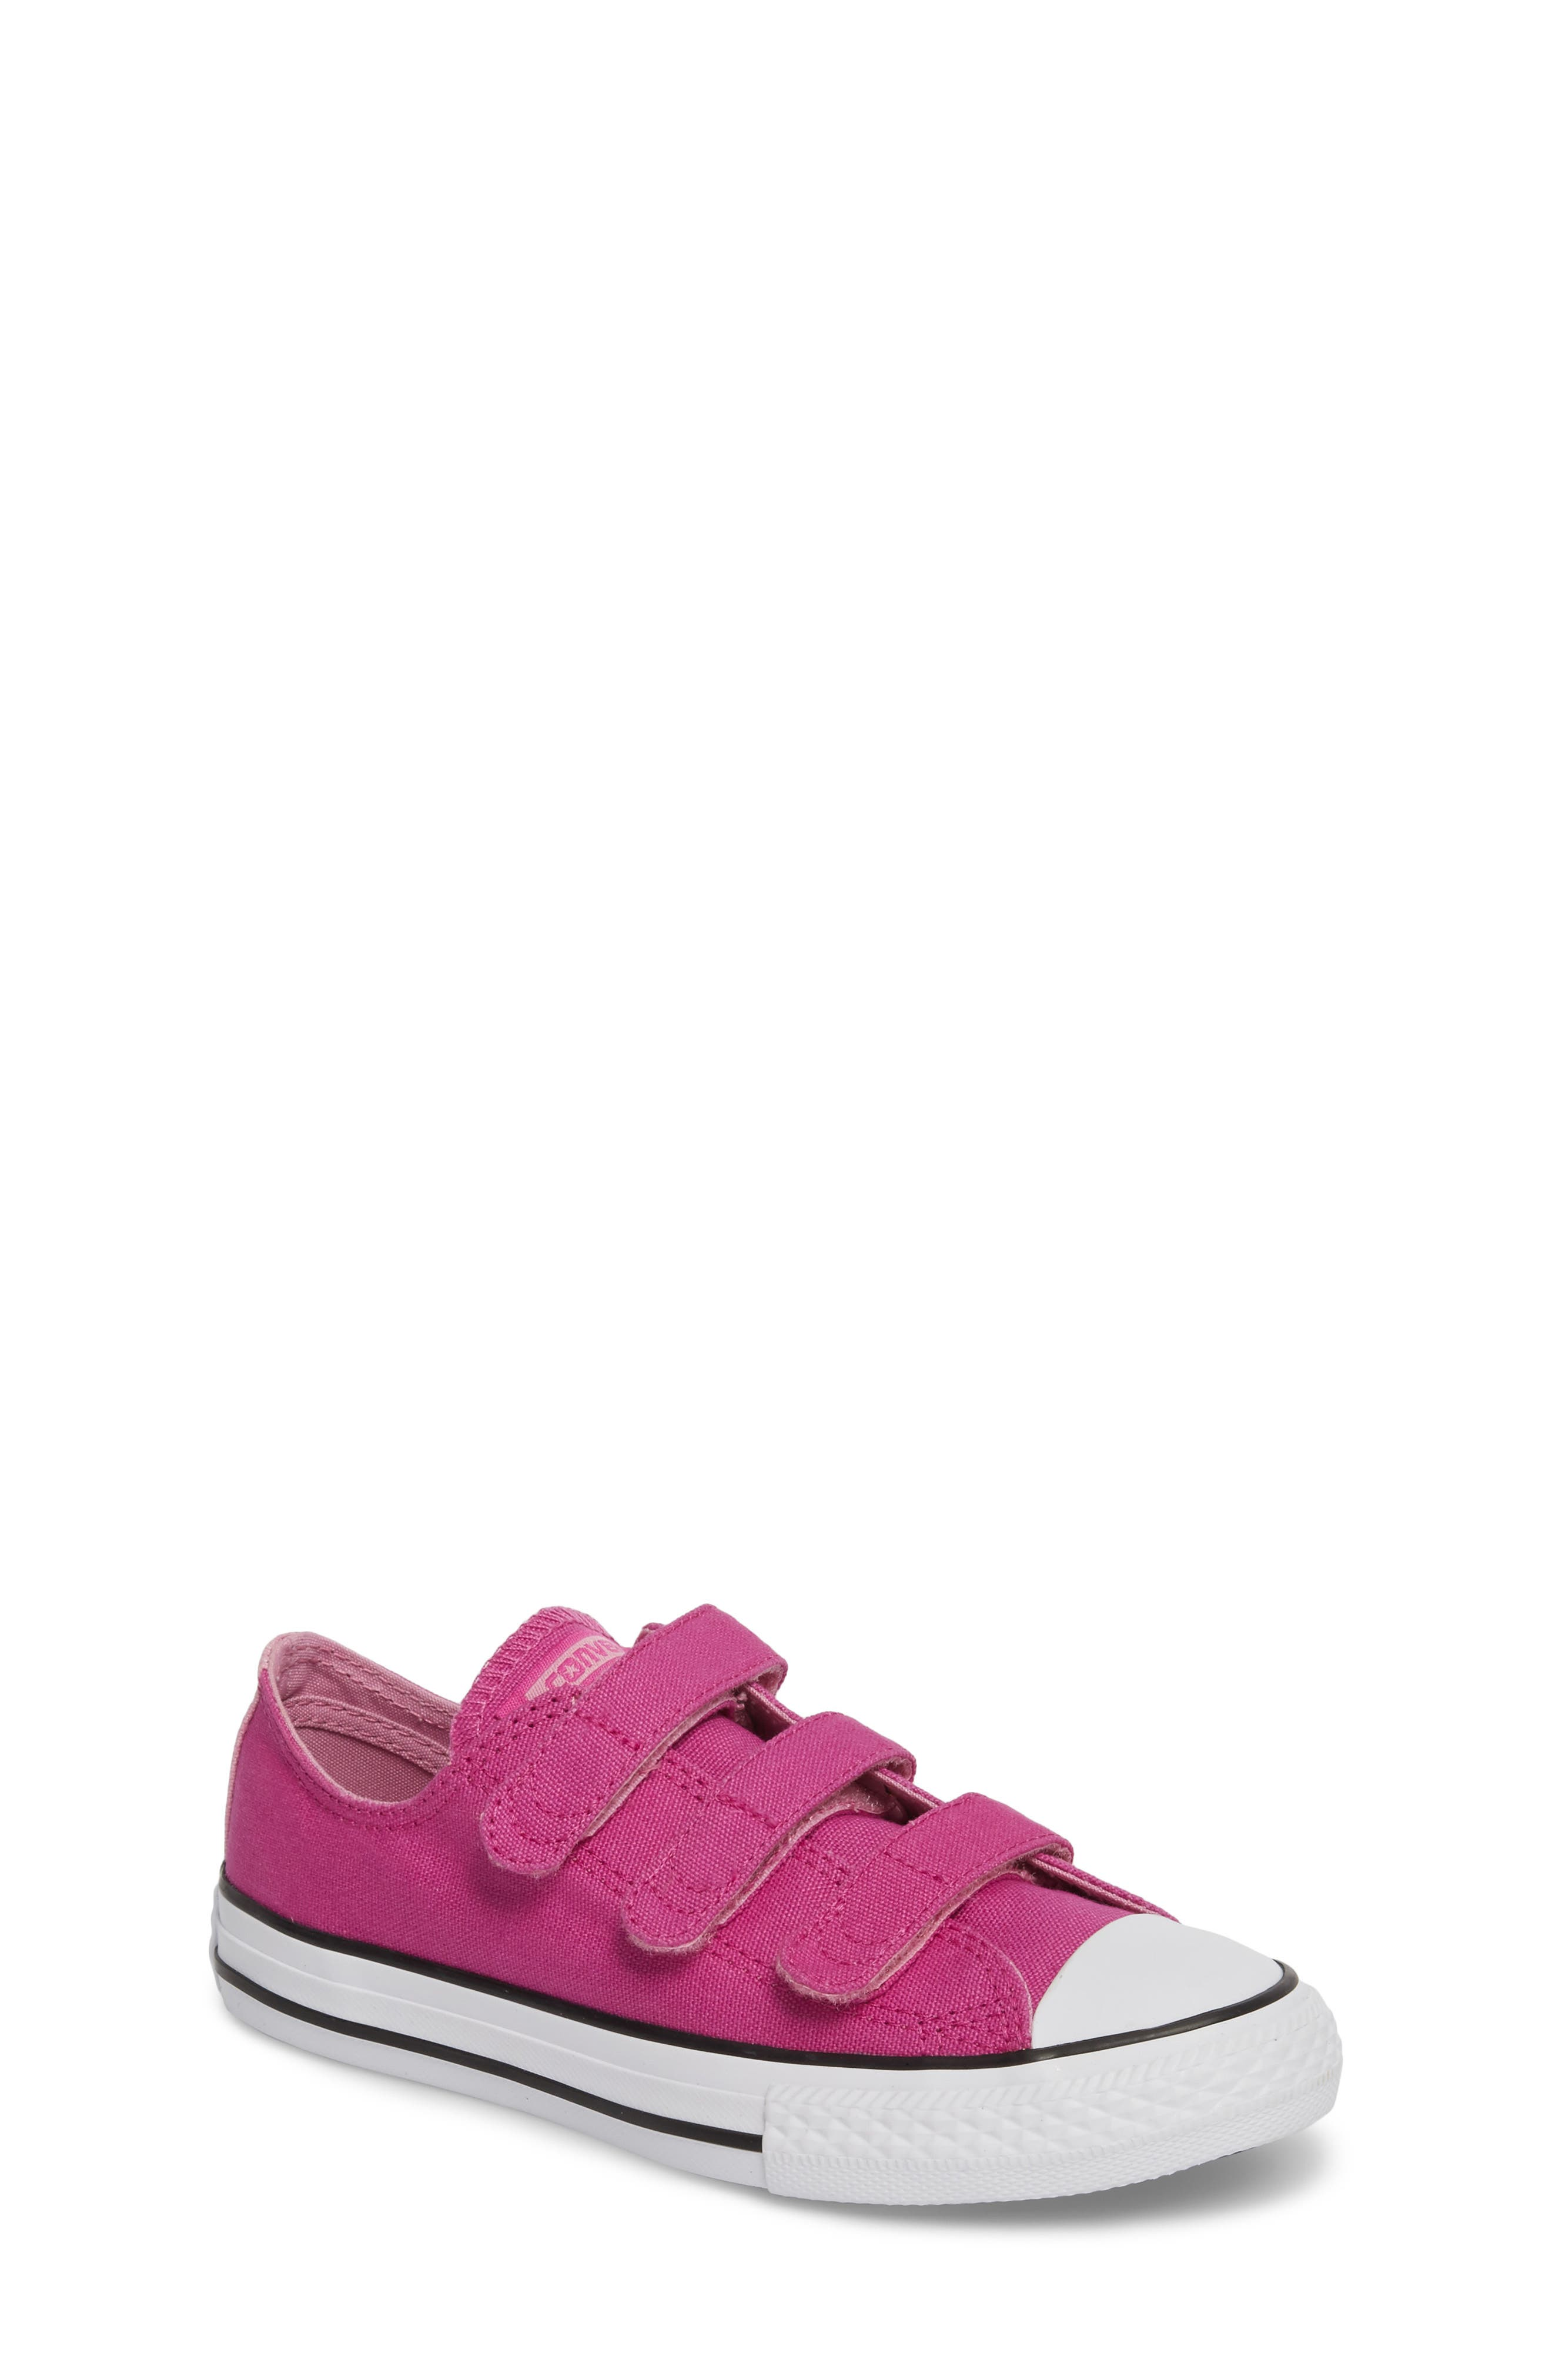 Chuck Taylor<sup>®</sup> All Star<sup>®</sup> 3V Low Top Sneaker,                             Main thumbnail 1, color,                             650